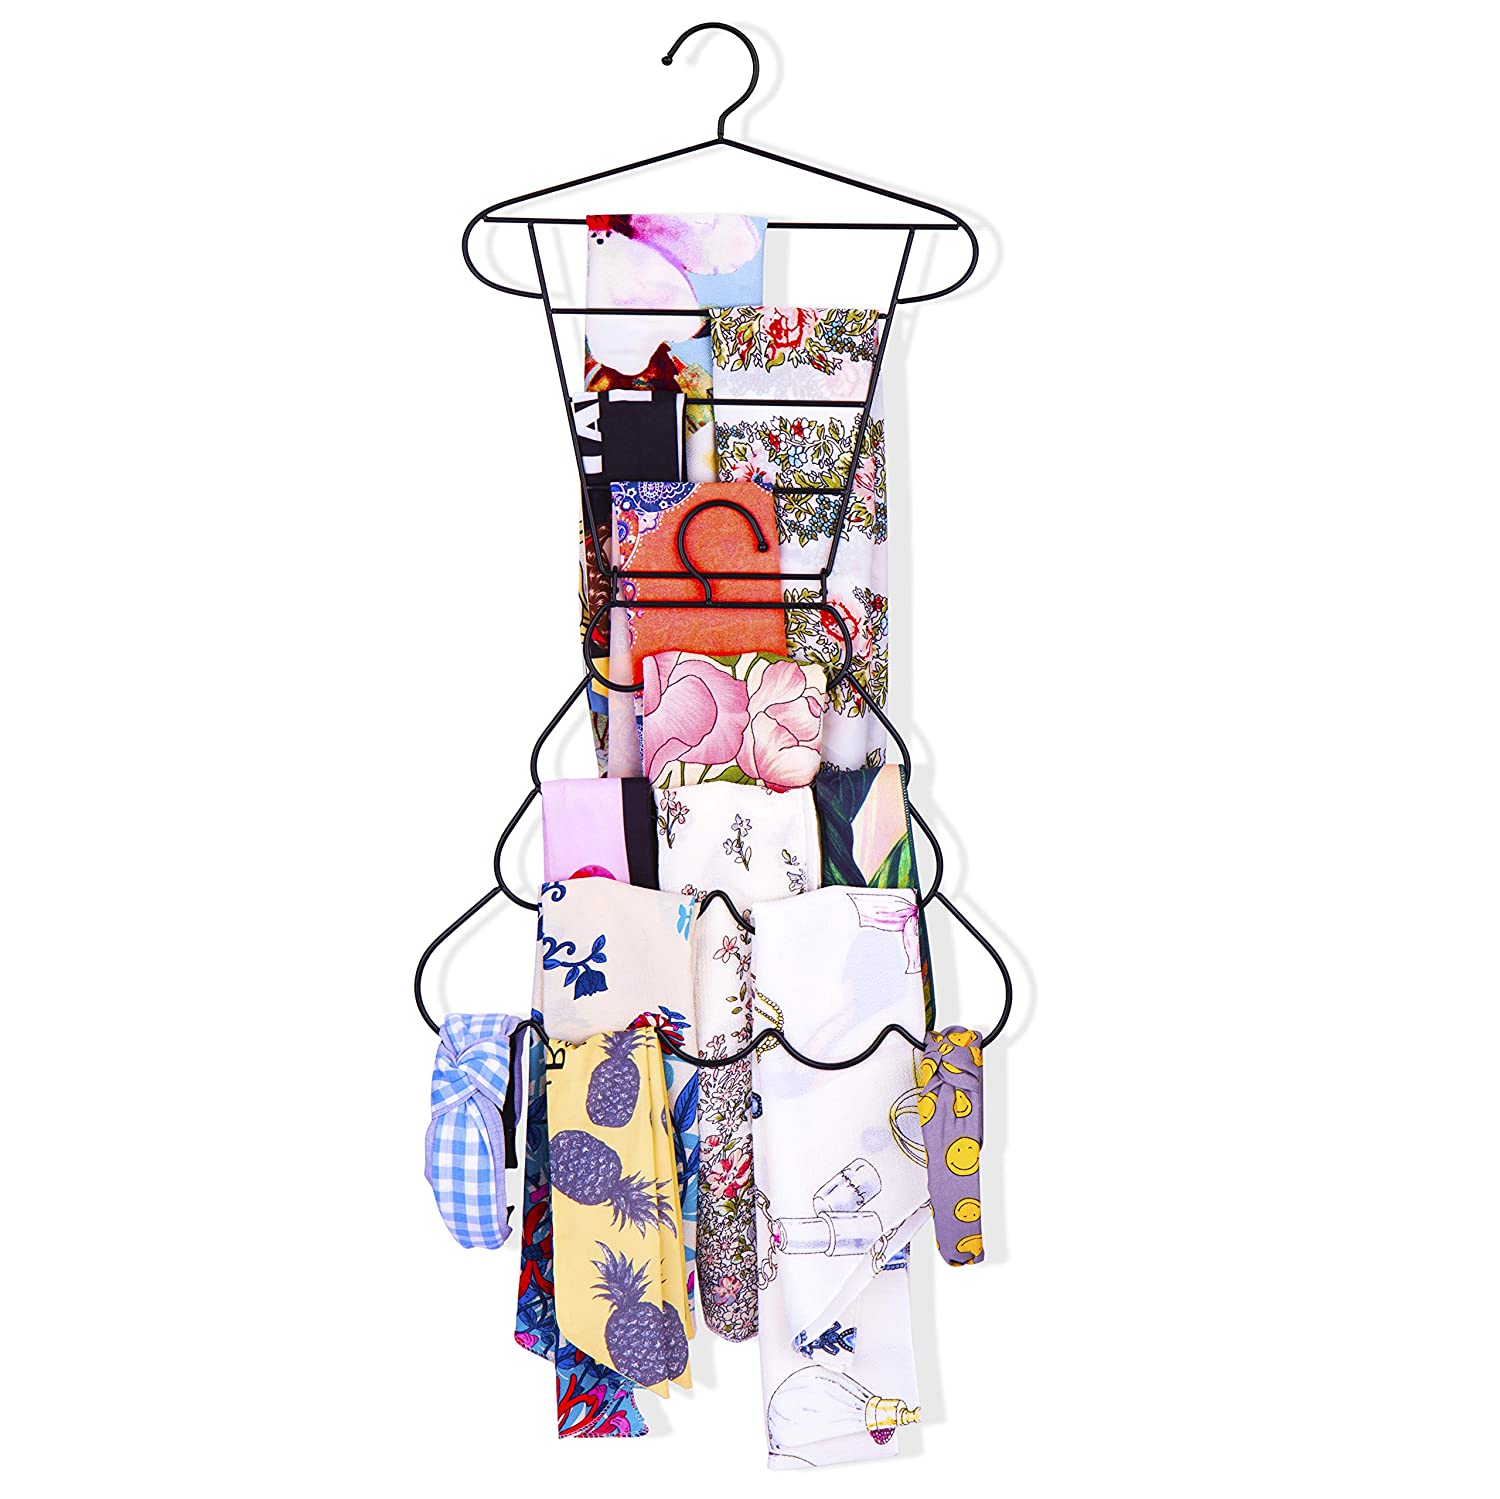 Keebofly Scarf Tie Belt Hanger Organizer Holder Rack for Closet and Wall,Part of 2 (Clothes & Skirt)